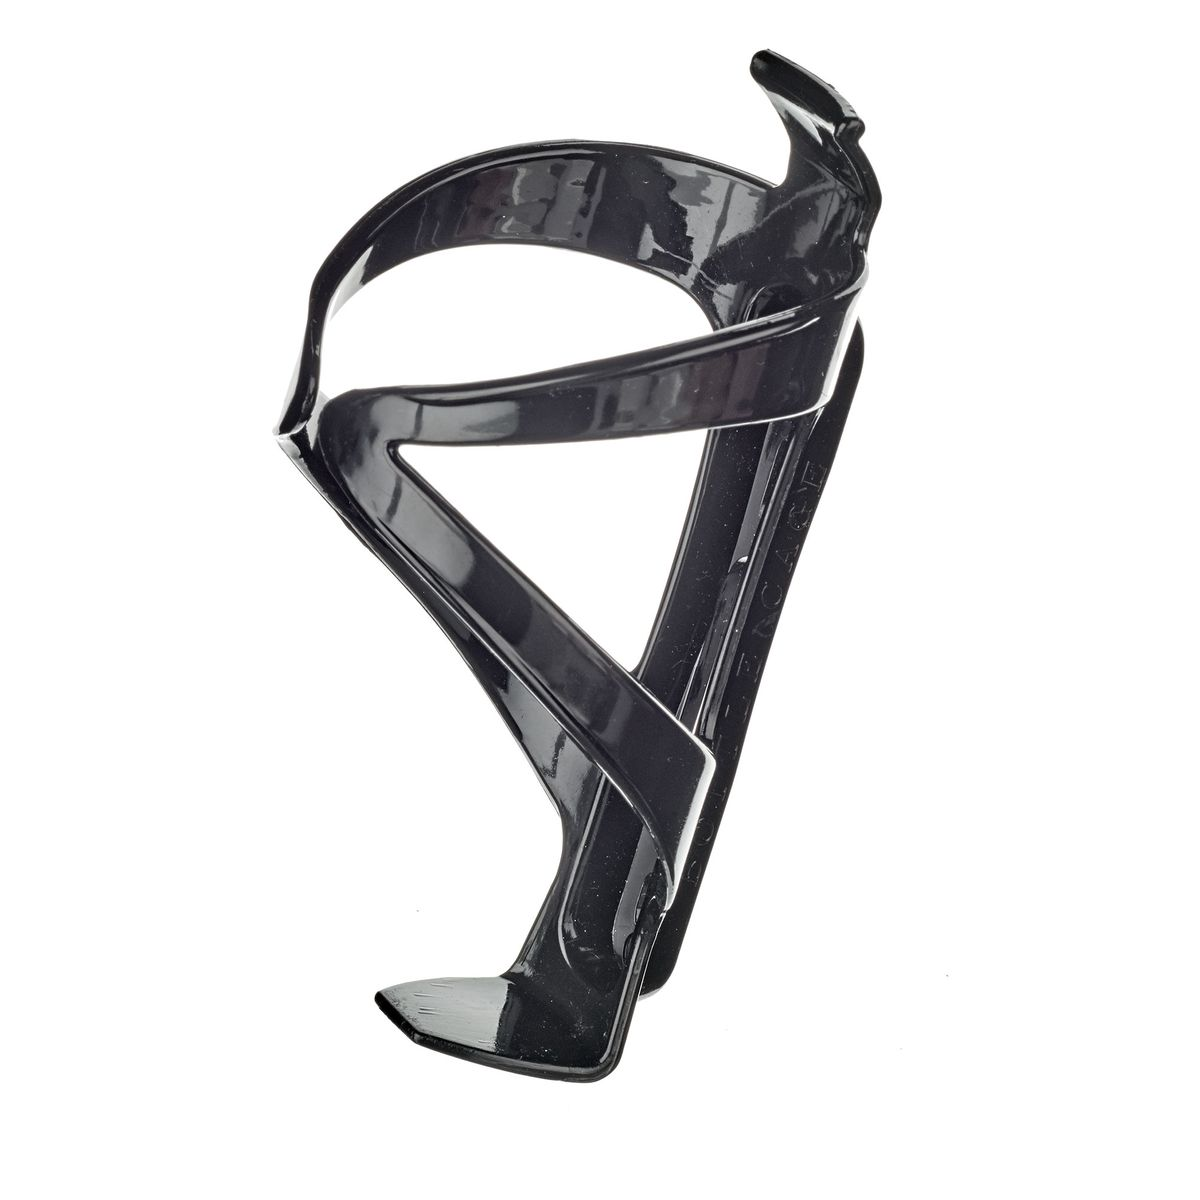 BC 35 Flex bottle cage